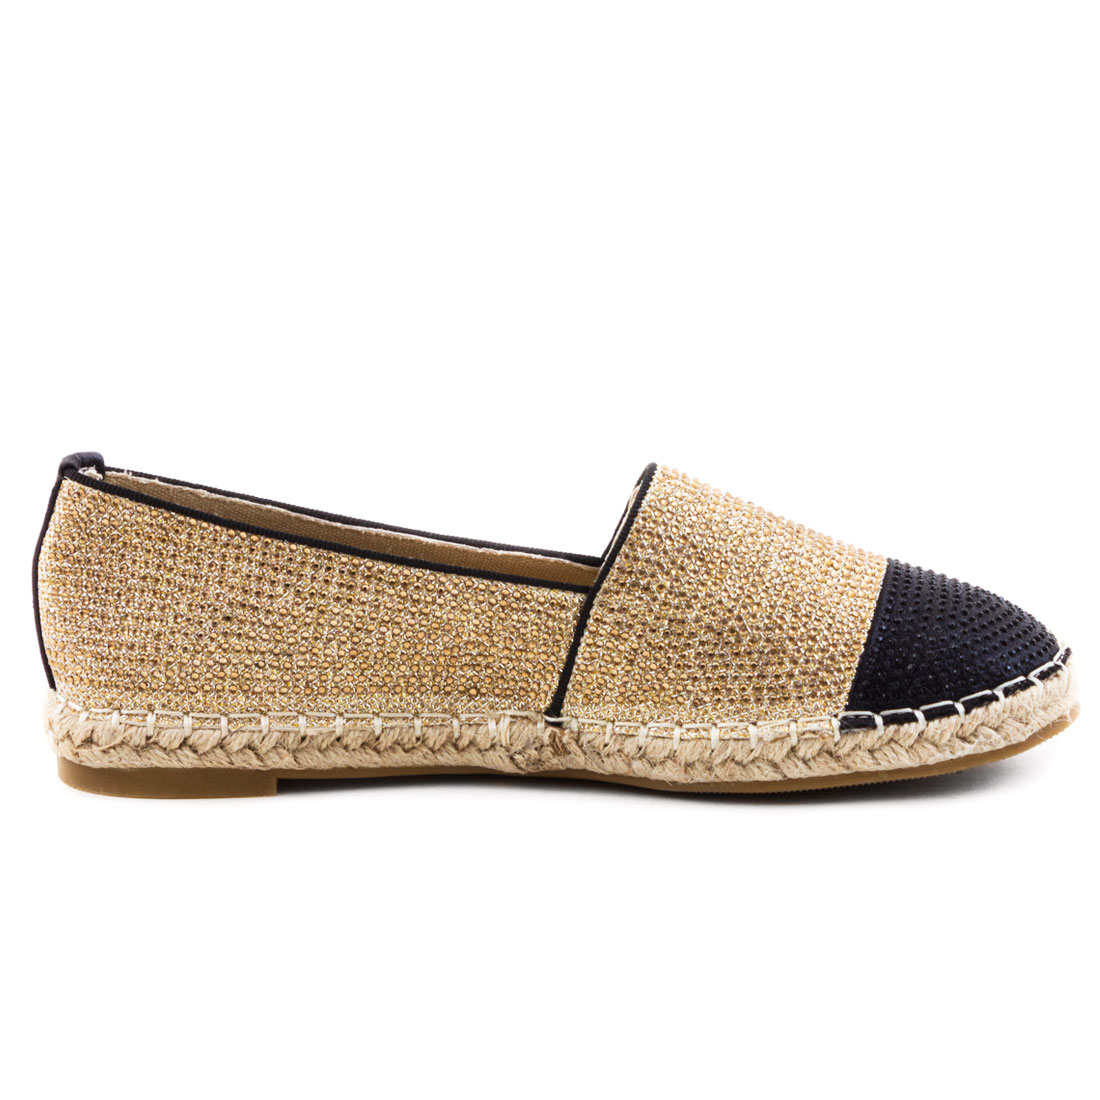 neu damen espadrilles sommer slipper halbschuhe strass. Black Bedroom Furniture Sets. Home Design Ideas